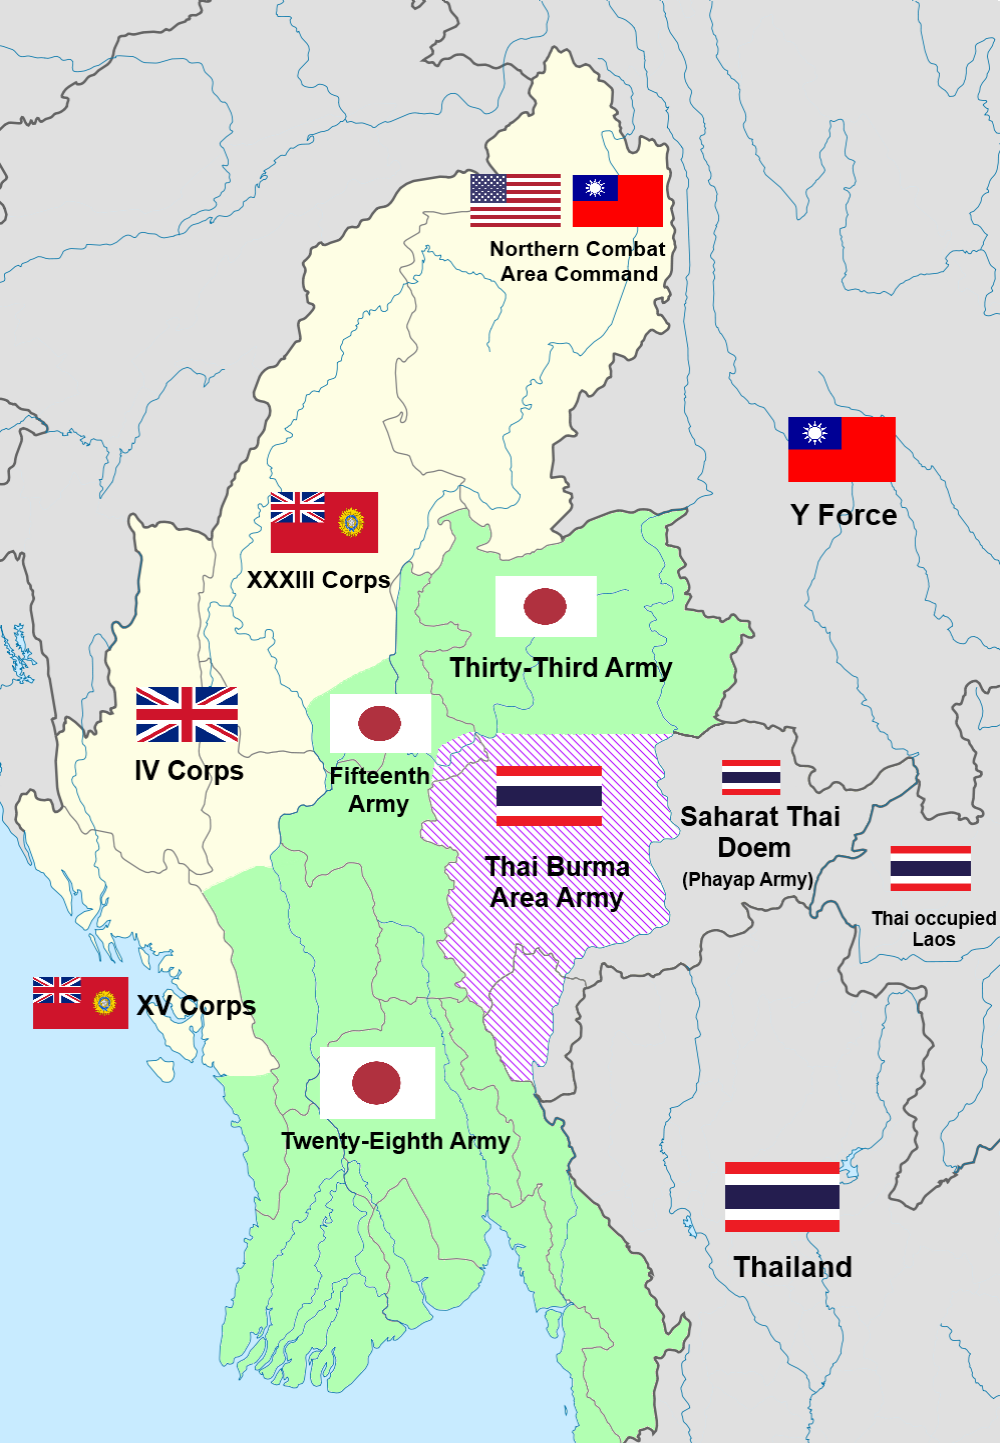 Map of the Burma front showing the conflict of Japanese-Thai and Allied forces during the Burma Campaign of World War II.